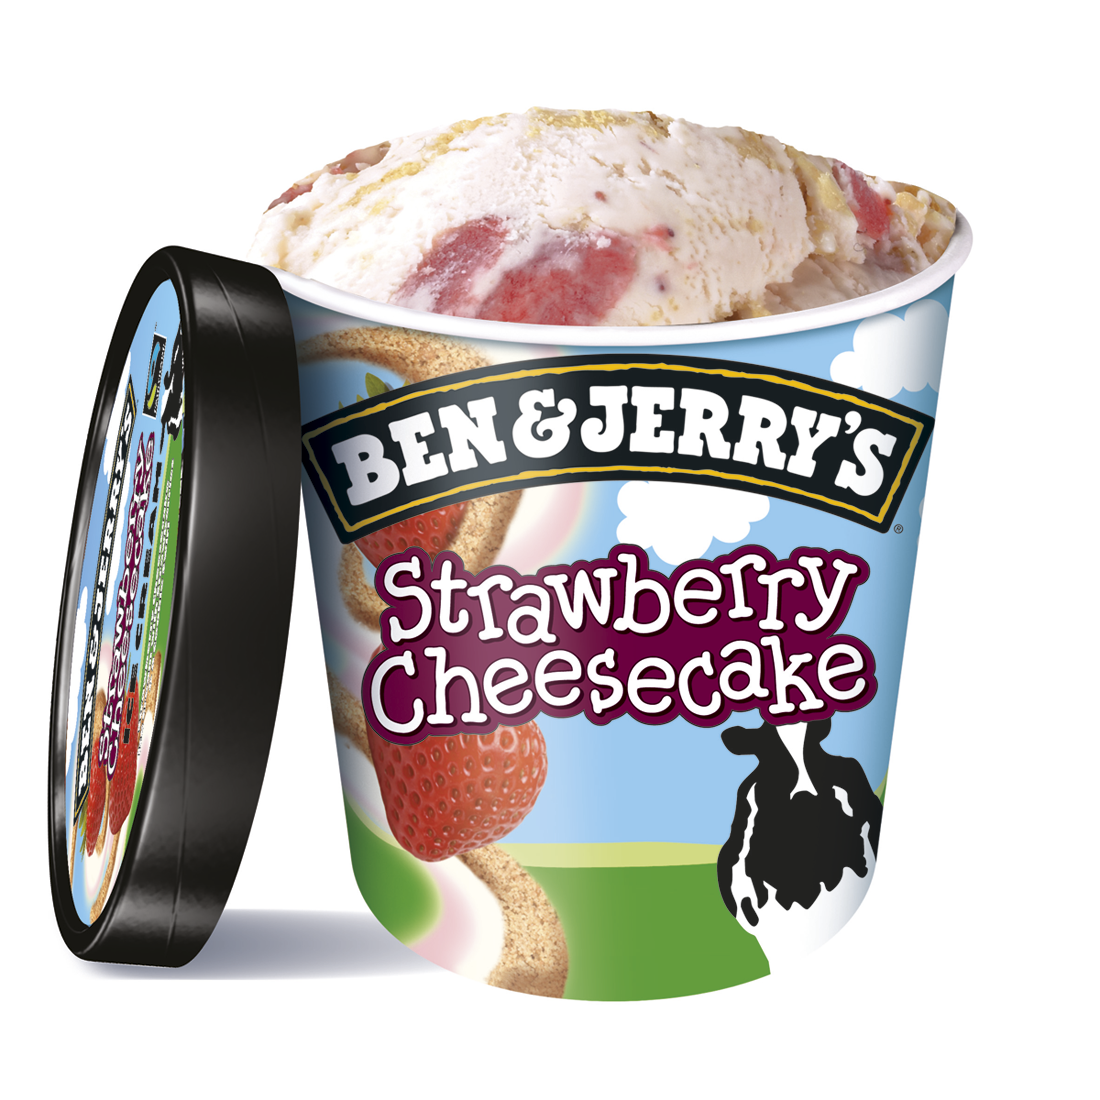 Ben & Jerry's strawberry cheesecake helado tarta queso con fresa cookie de 50cl. en tarrina